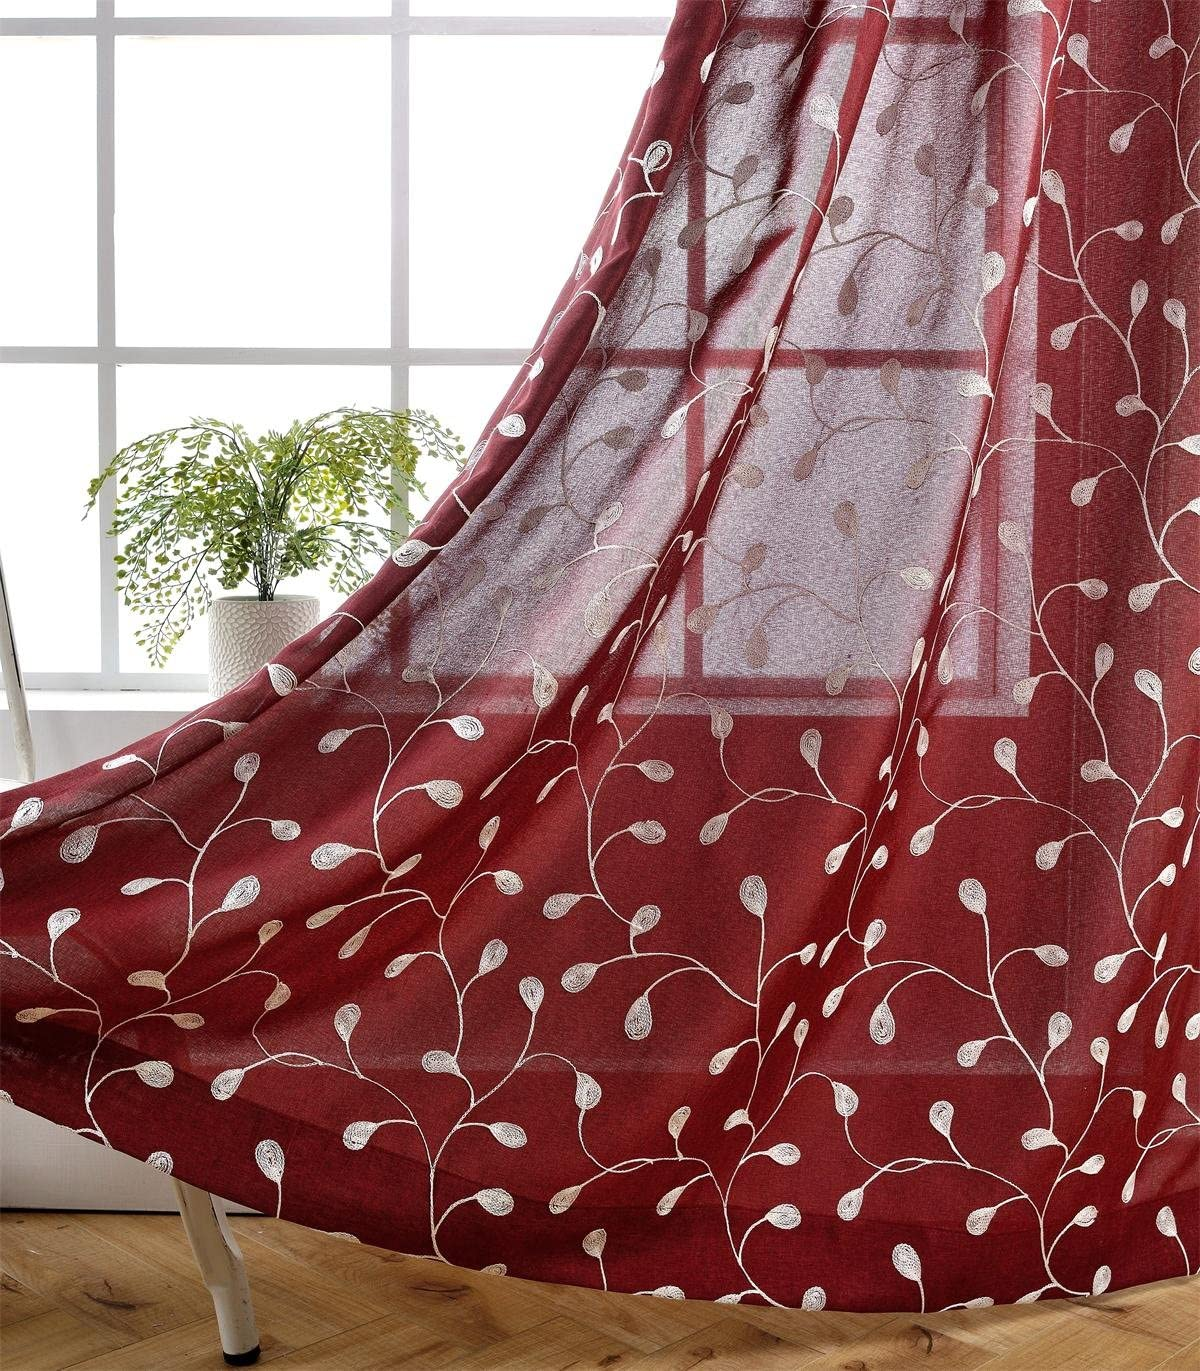 MIUCO Floral Embroidery Semi Sheer Curtain Panels Faux Linen Grommet Curtains for Kids Room 52 x 95 Inch 2 Panels, Burgundy